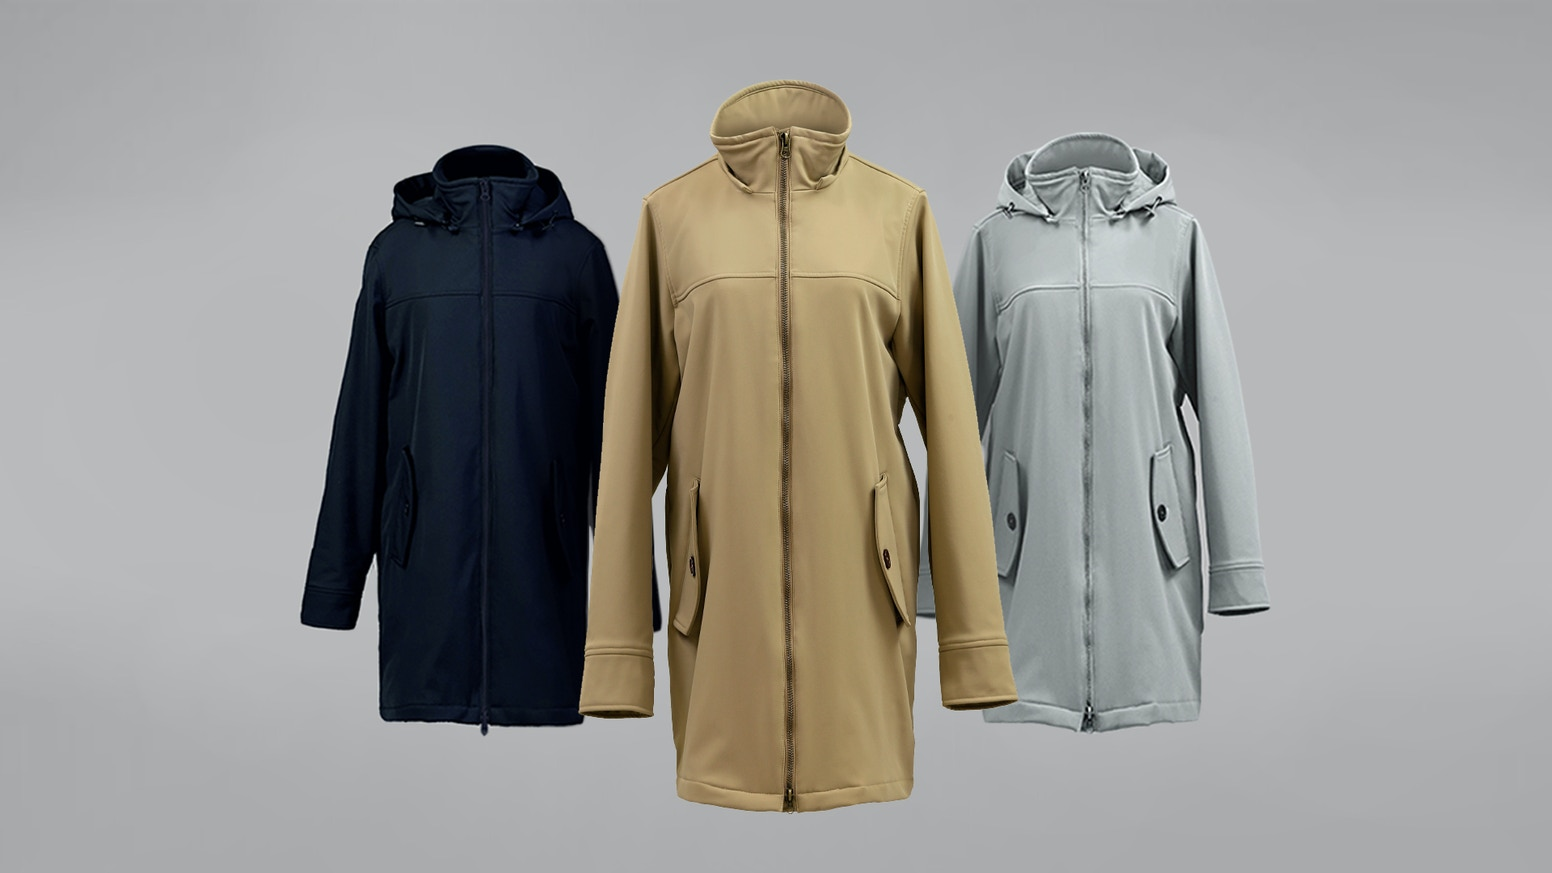 Waterproof, Windproof, Thermoregulation, Anti-Bacteria, Anti-Odor, Anti-Static, Comes with A Detachable Inner Down Jacket, ECO-Friendly